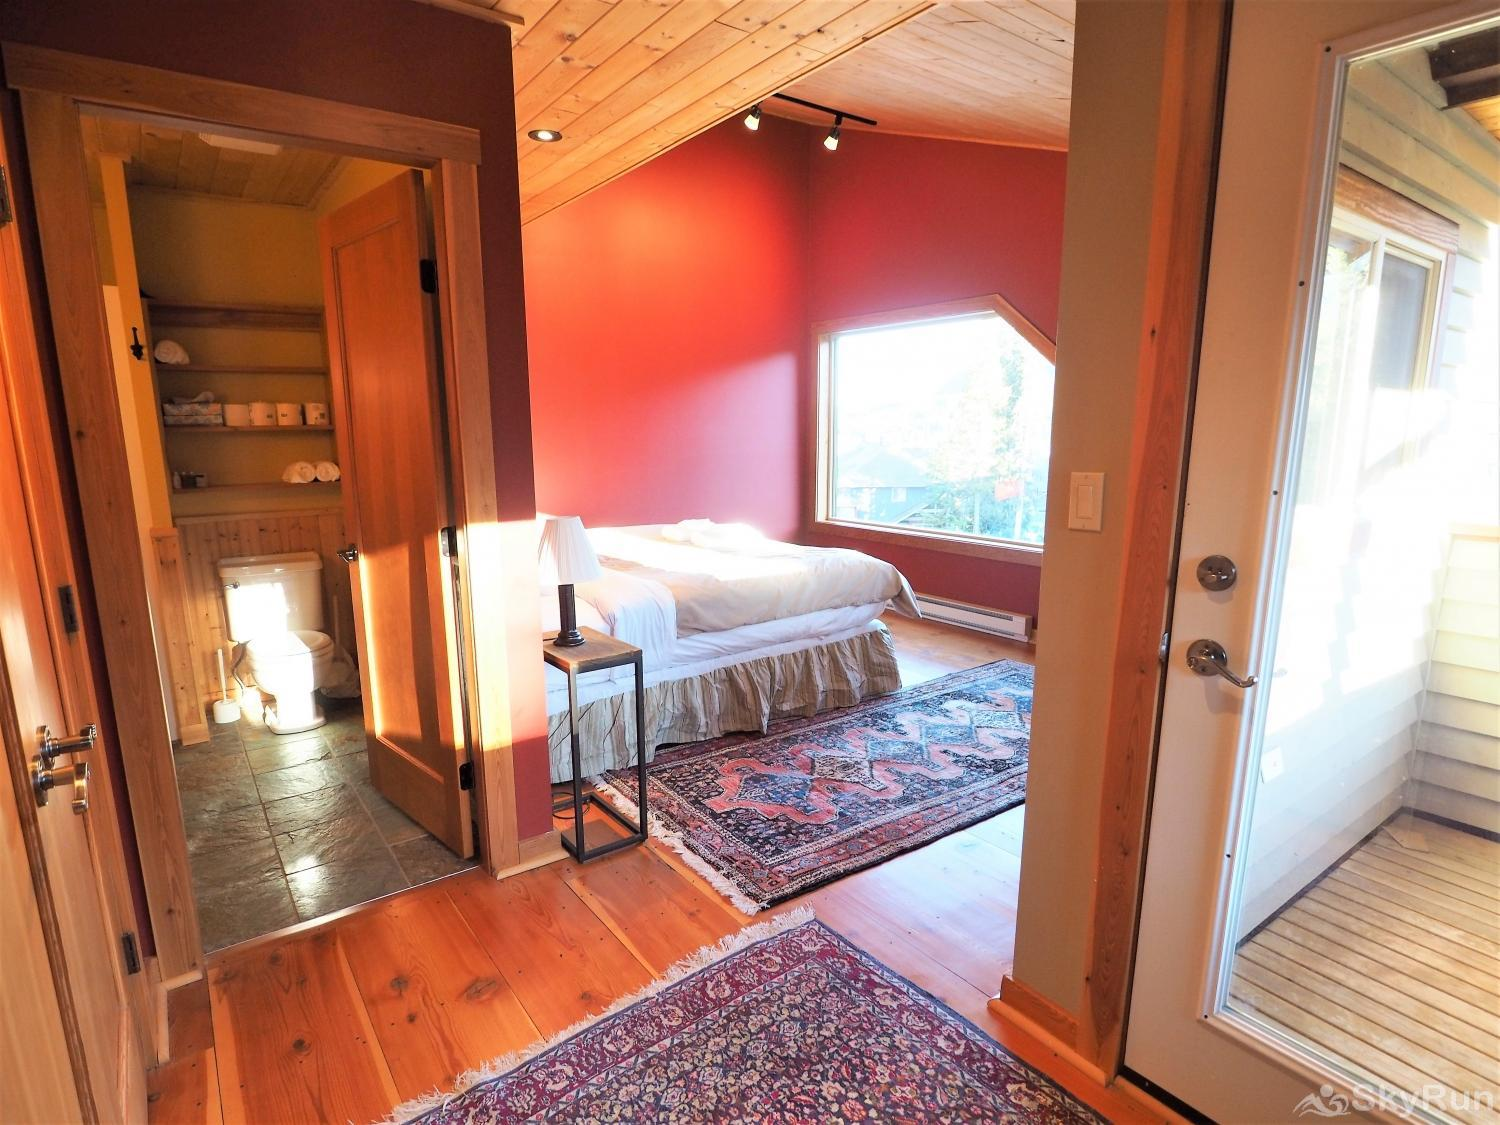 Round Roof Retreat The master bedroom - King bed, ensuite bathroom, views of the Apex Mountain